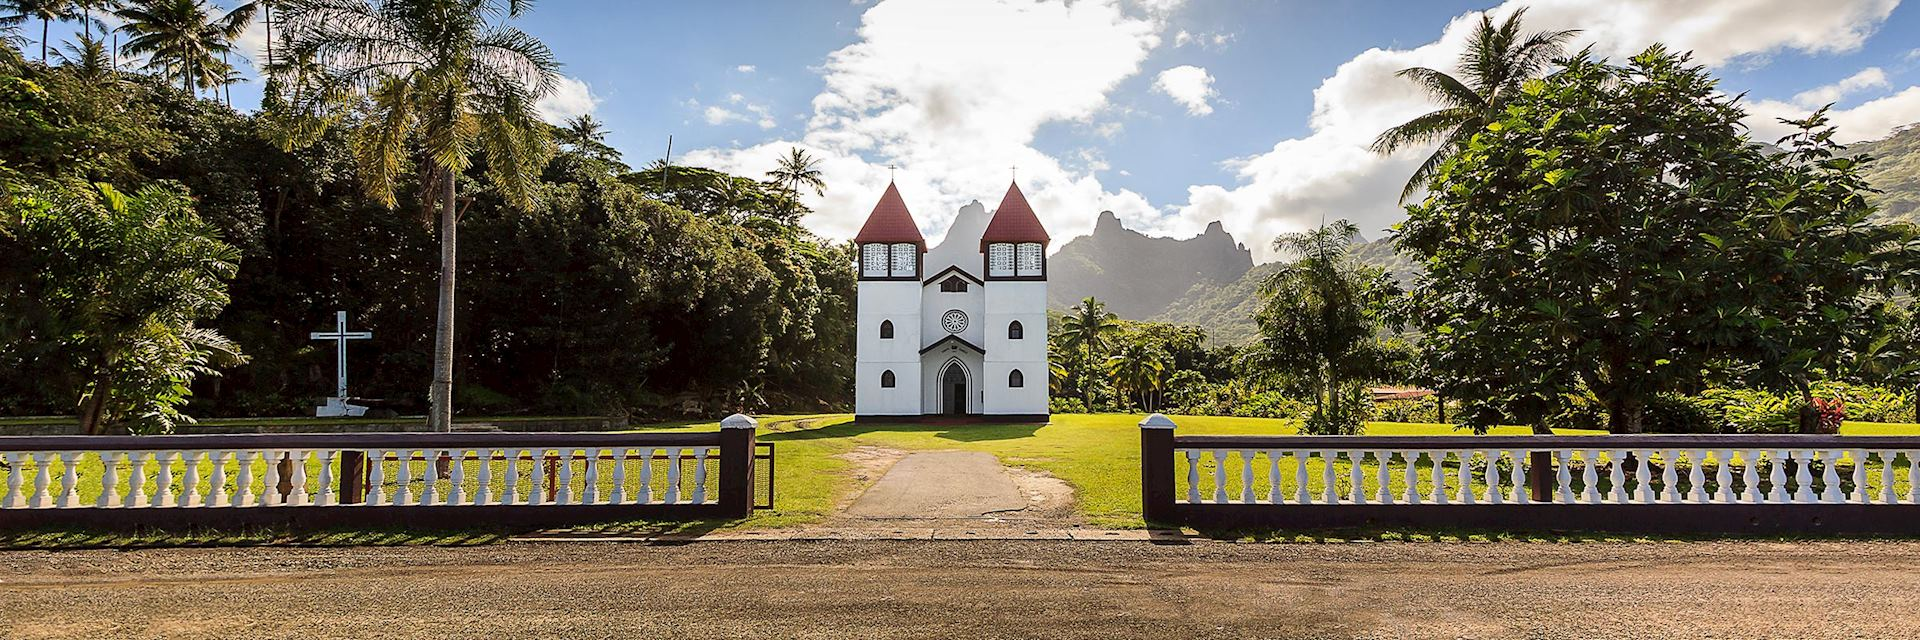 Catholic church, Moorea Island